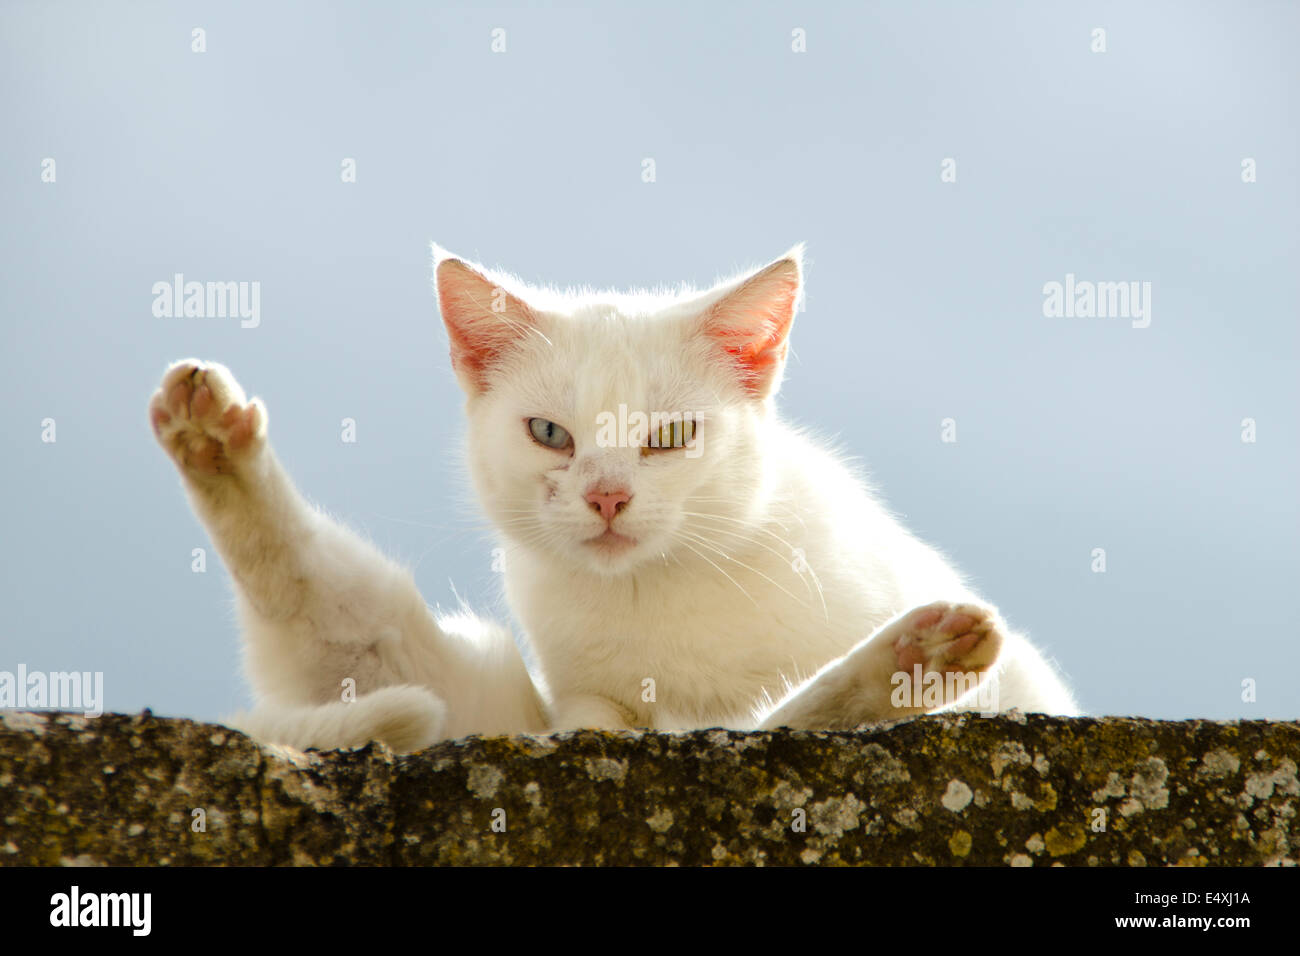 Cat with two different eyes on the Great walk of Saint James, Jakobsweg, Camino de Santiago, Spain, España, - Stock Image